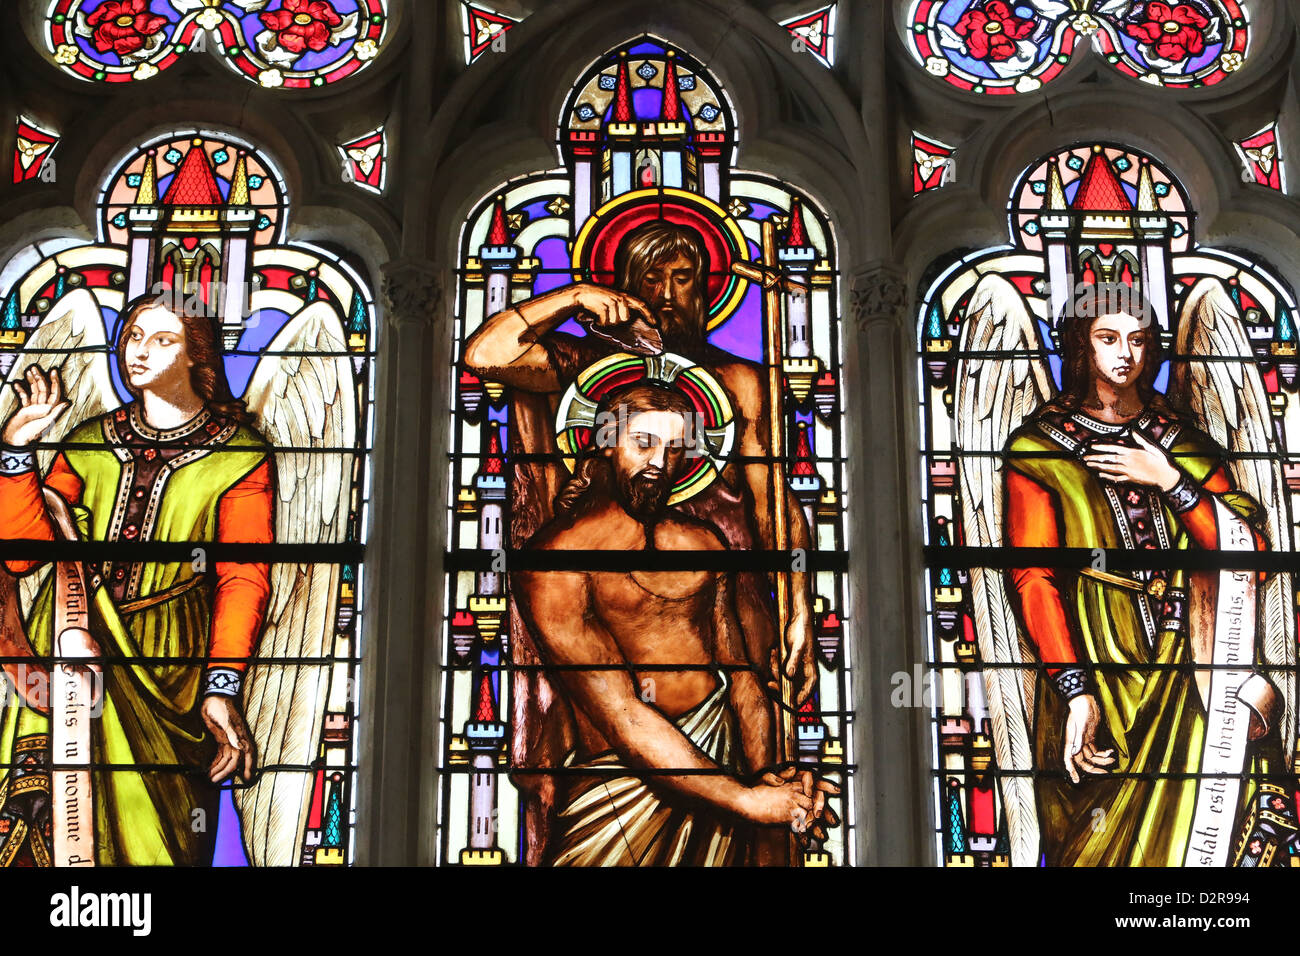 Stained glass window depicting the Baptism of Jesus by John the Baptist, St. Germain l'Auxerrois church, Paris, - Stock Image